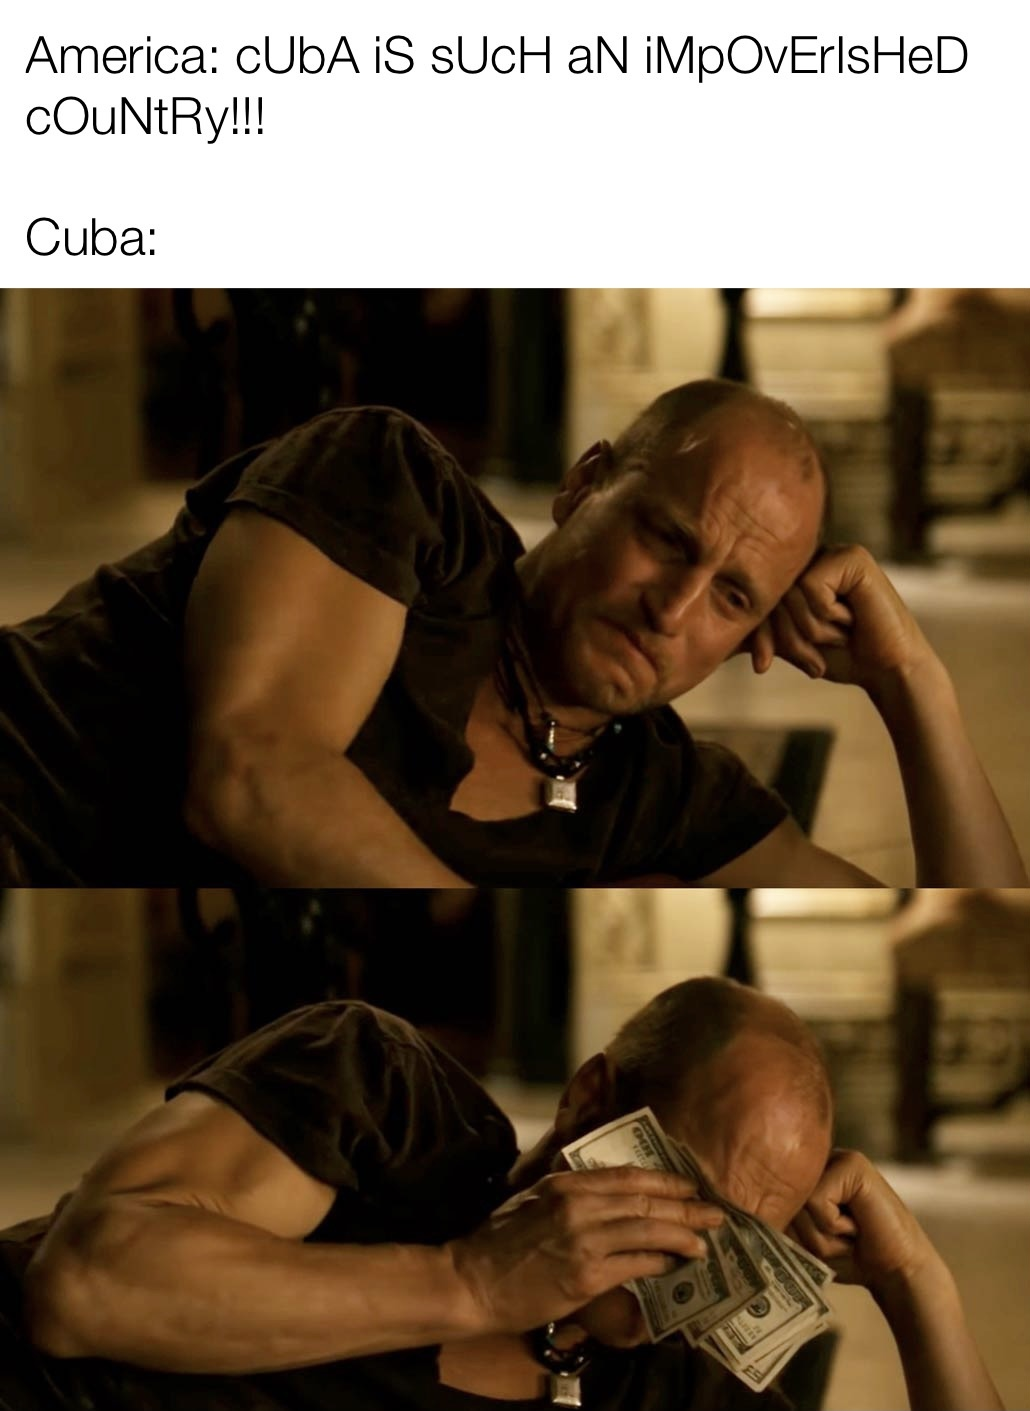 Cuba is the most sustainable country in terms of tech rn - meme